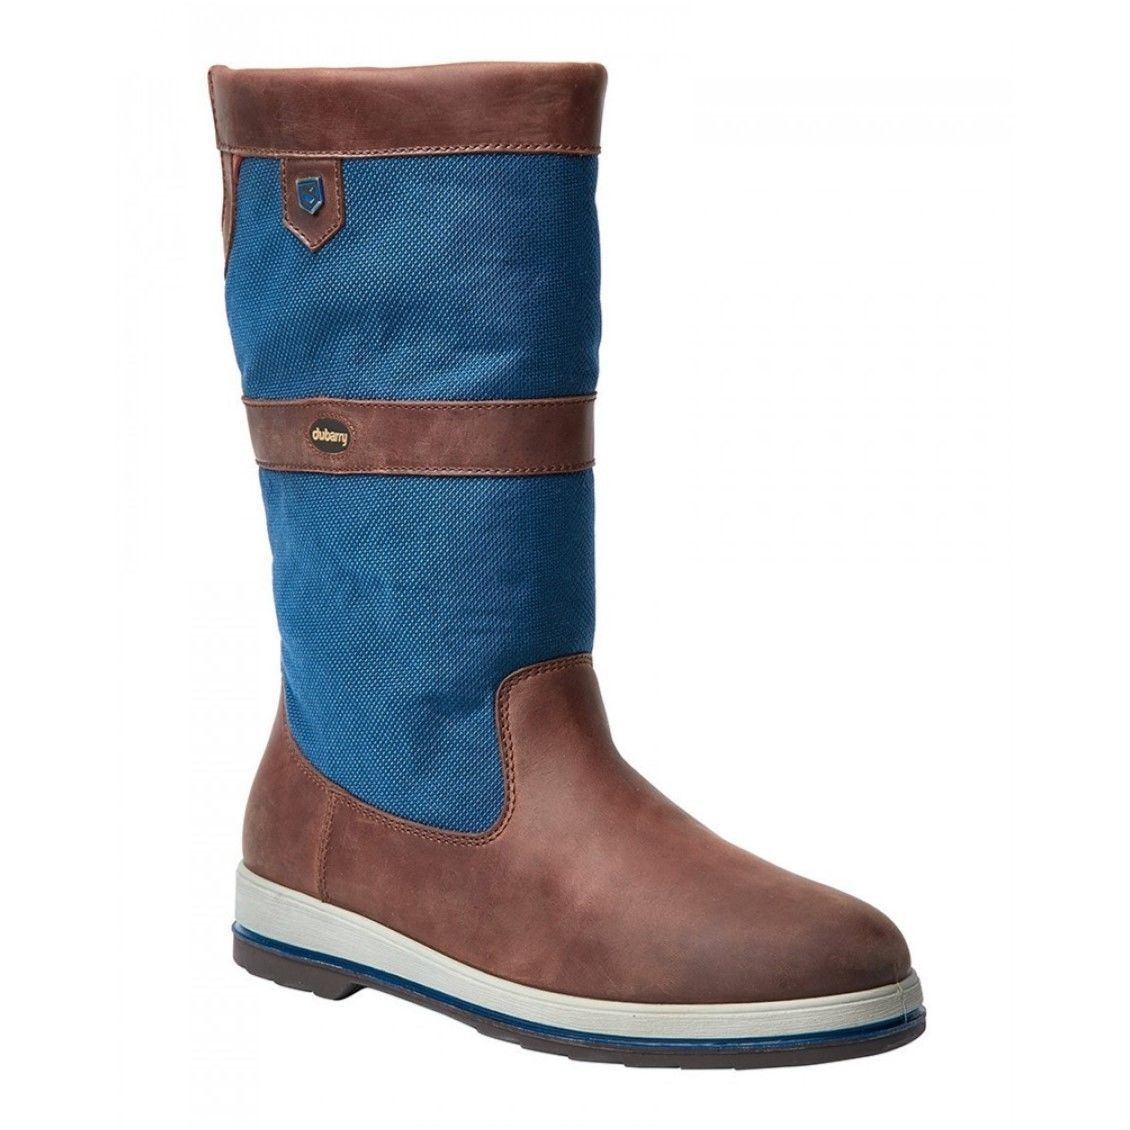 【New】Dubarry SHAMROCK ExtraFit